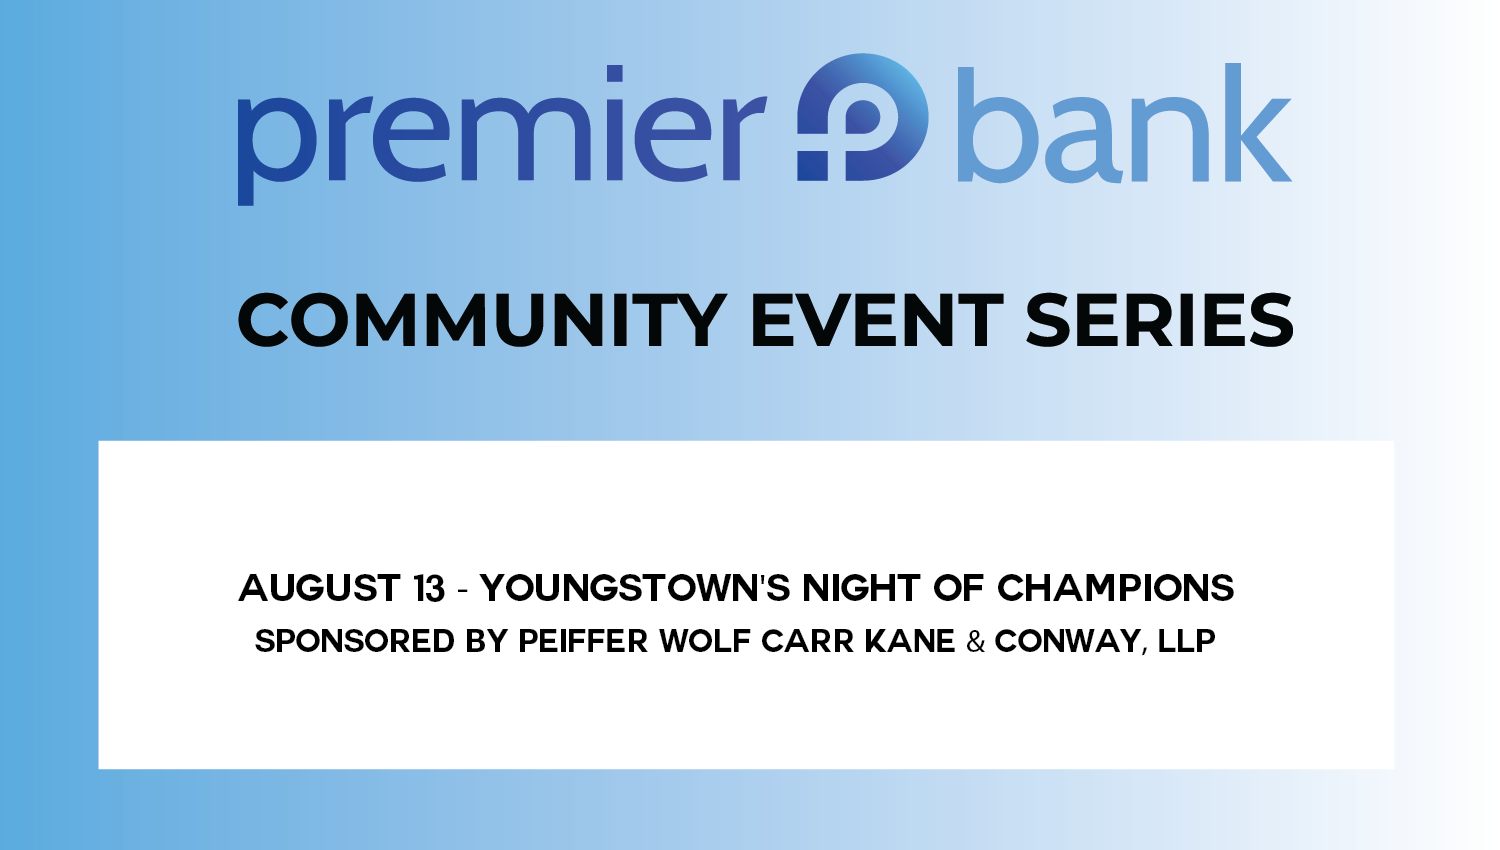 YOUNGSTOWN'S NIGHT OF CHAMPIONS SPONSORED BY PEIFFER, WOLF, CARR, KANE & CONWAY.